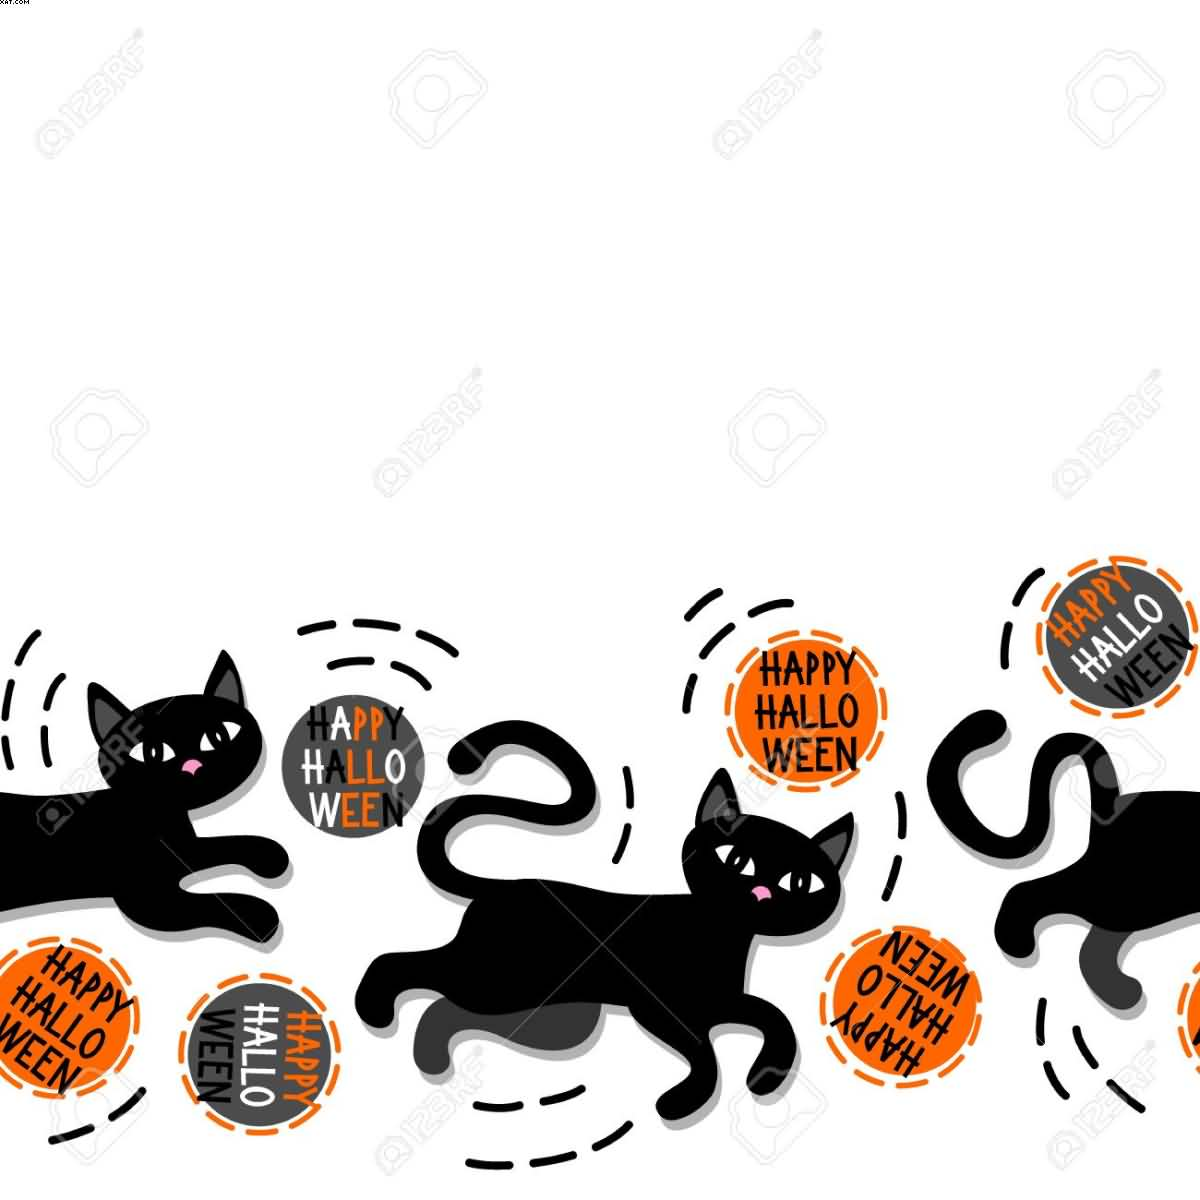 Black cats with Halloween wishes horizontal border on white background picture